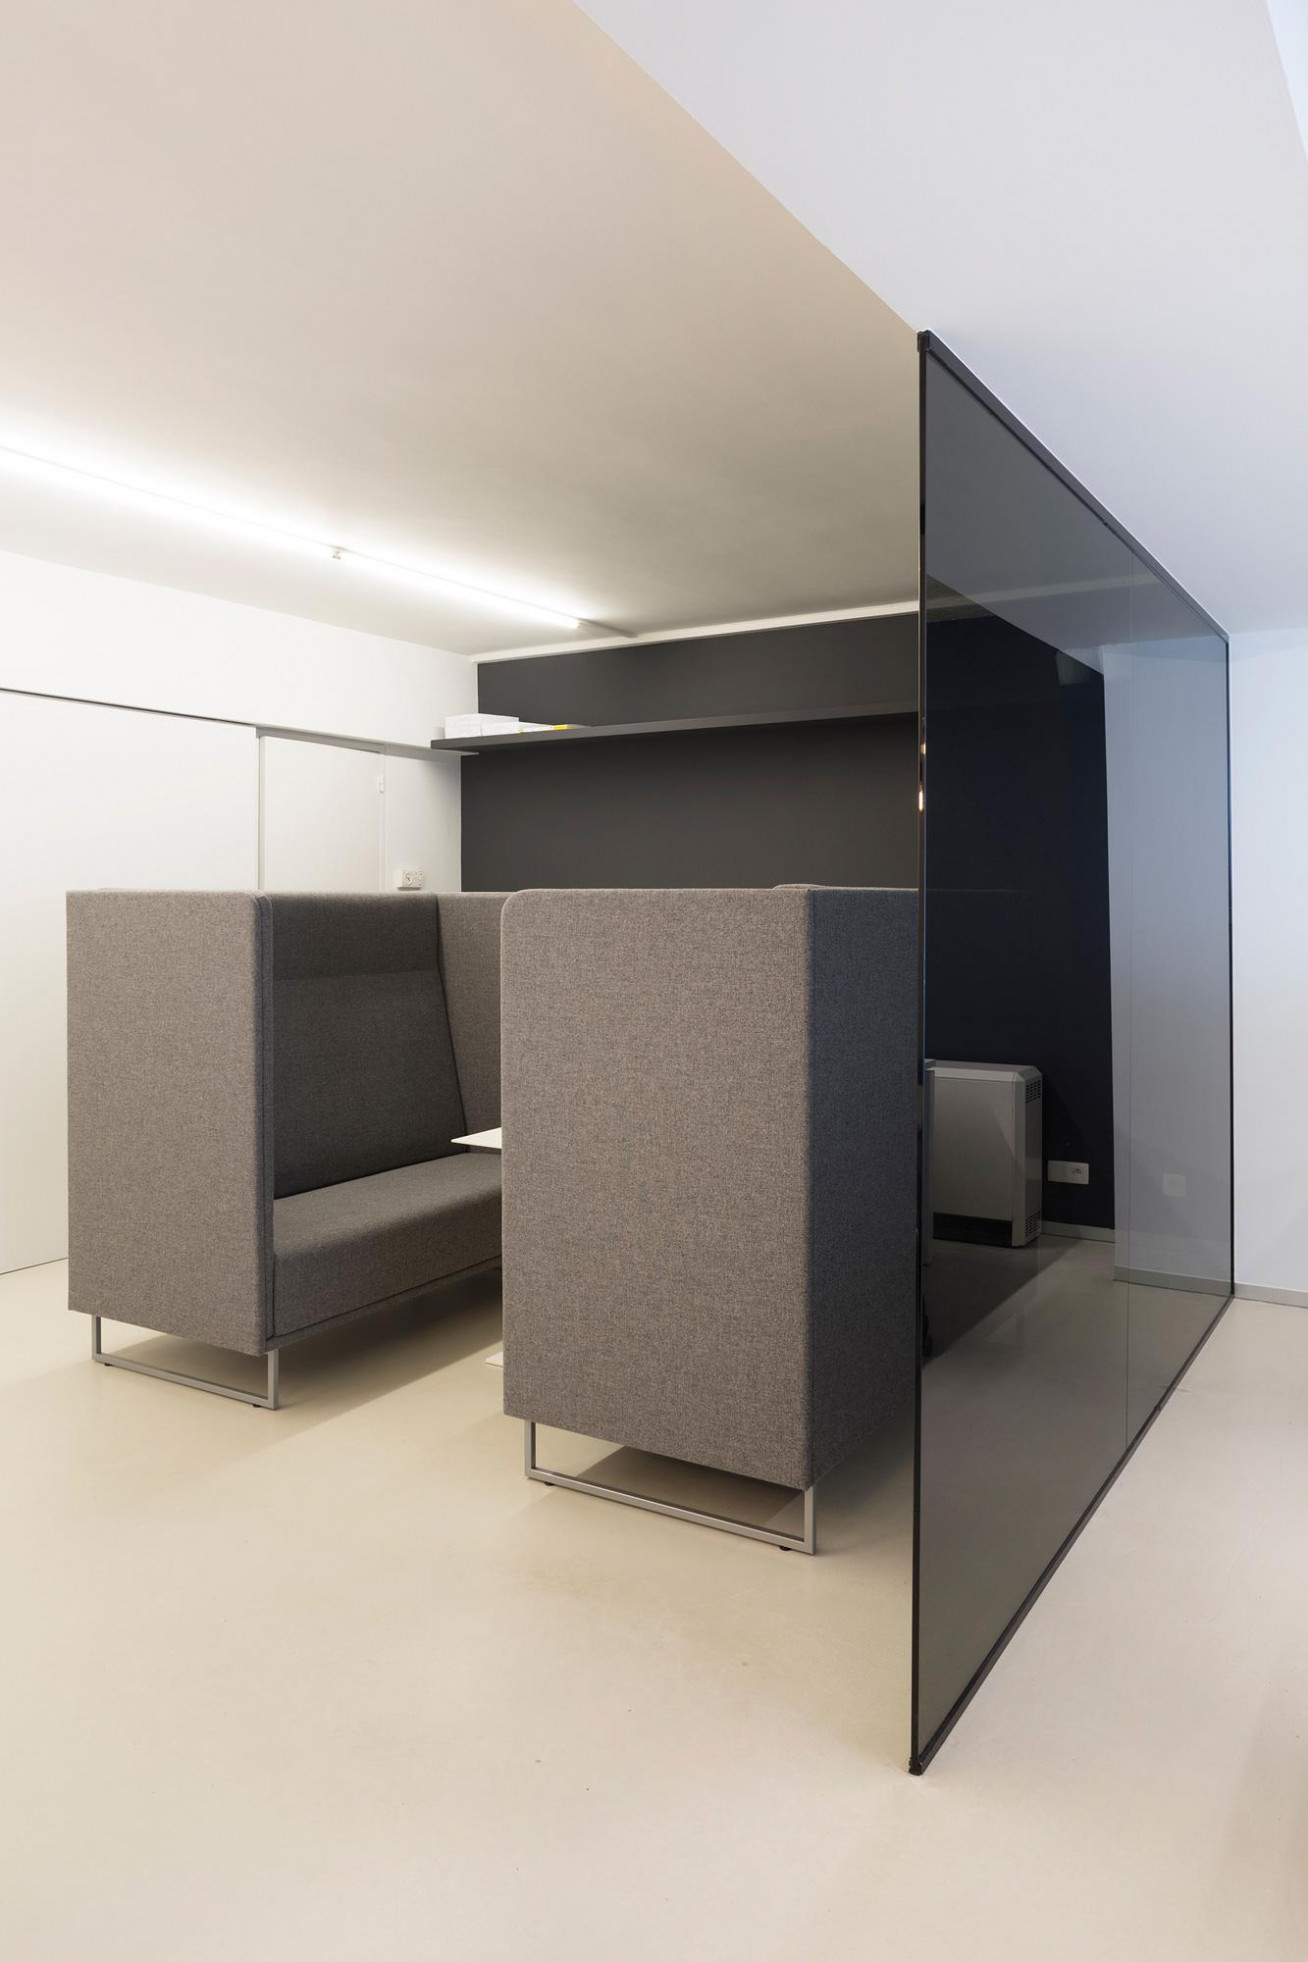 office-box-co-working-space-artnivo-6_0.jpg